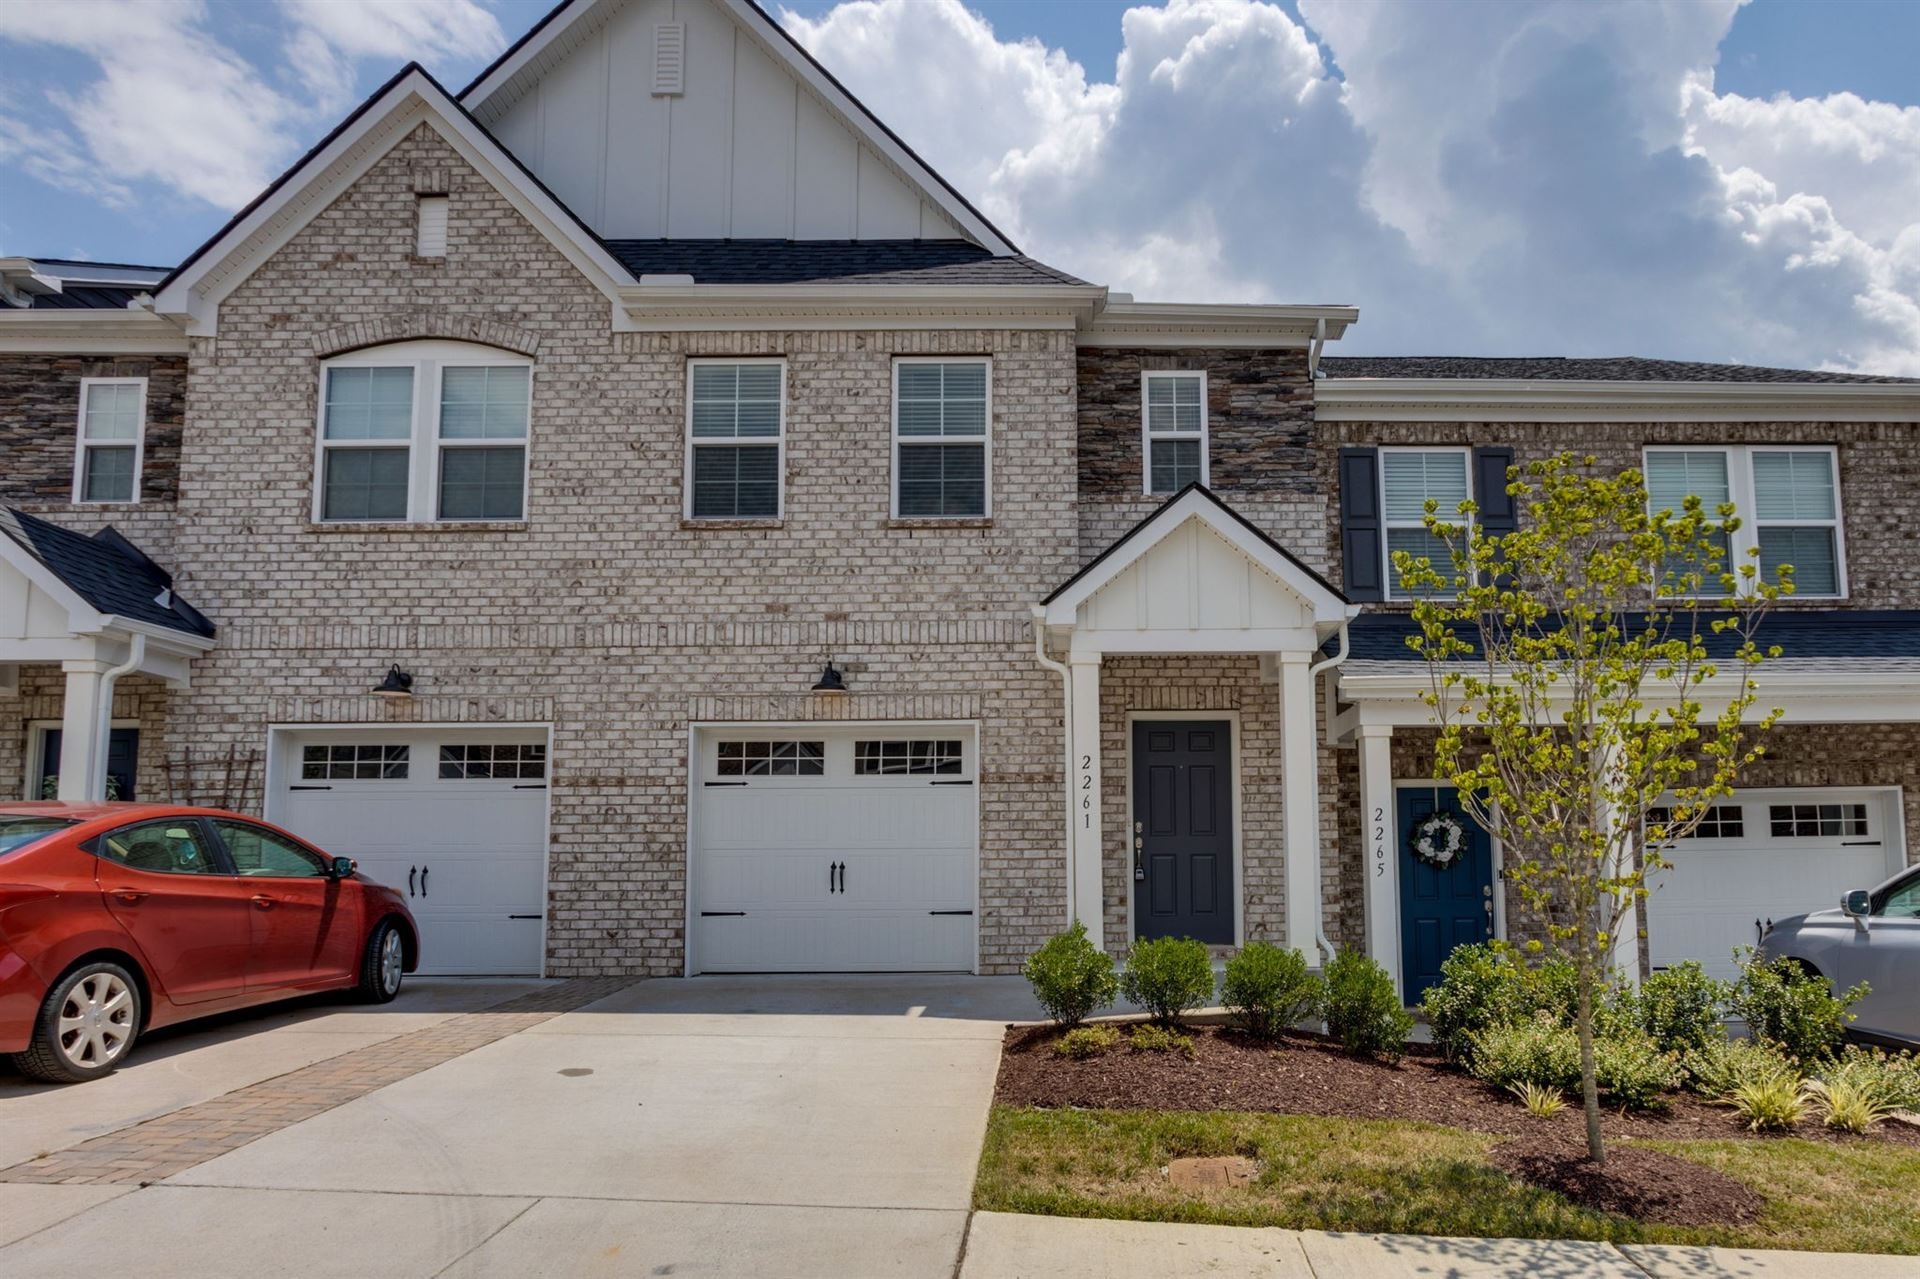 2261 Belle Creek Way, Nashville, TN 37221 - MLS#: 2177081